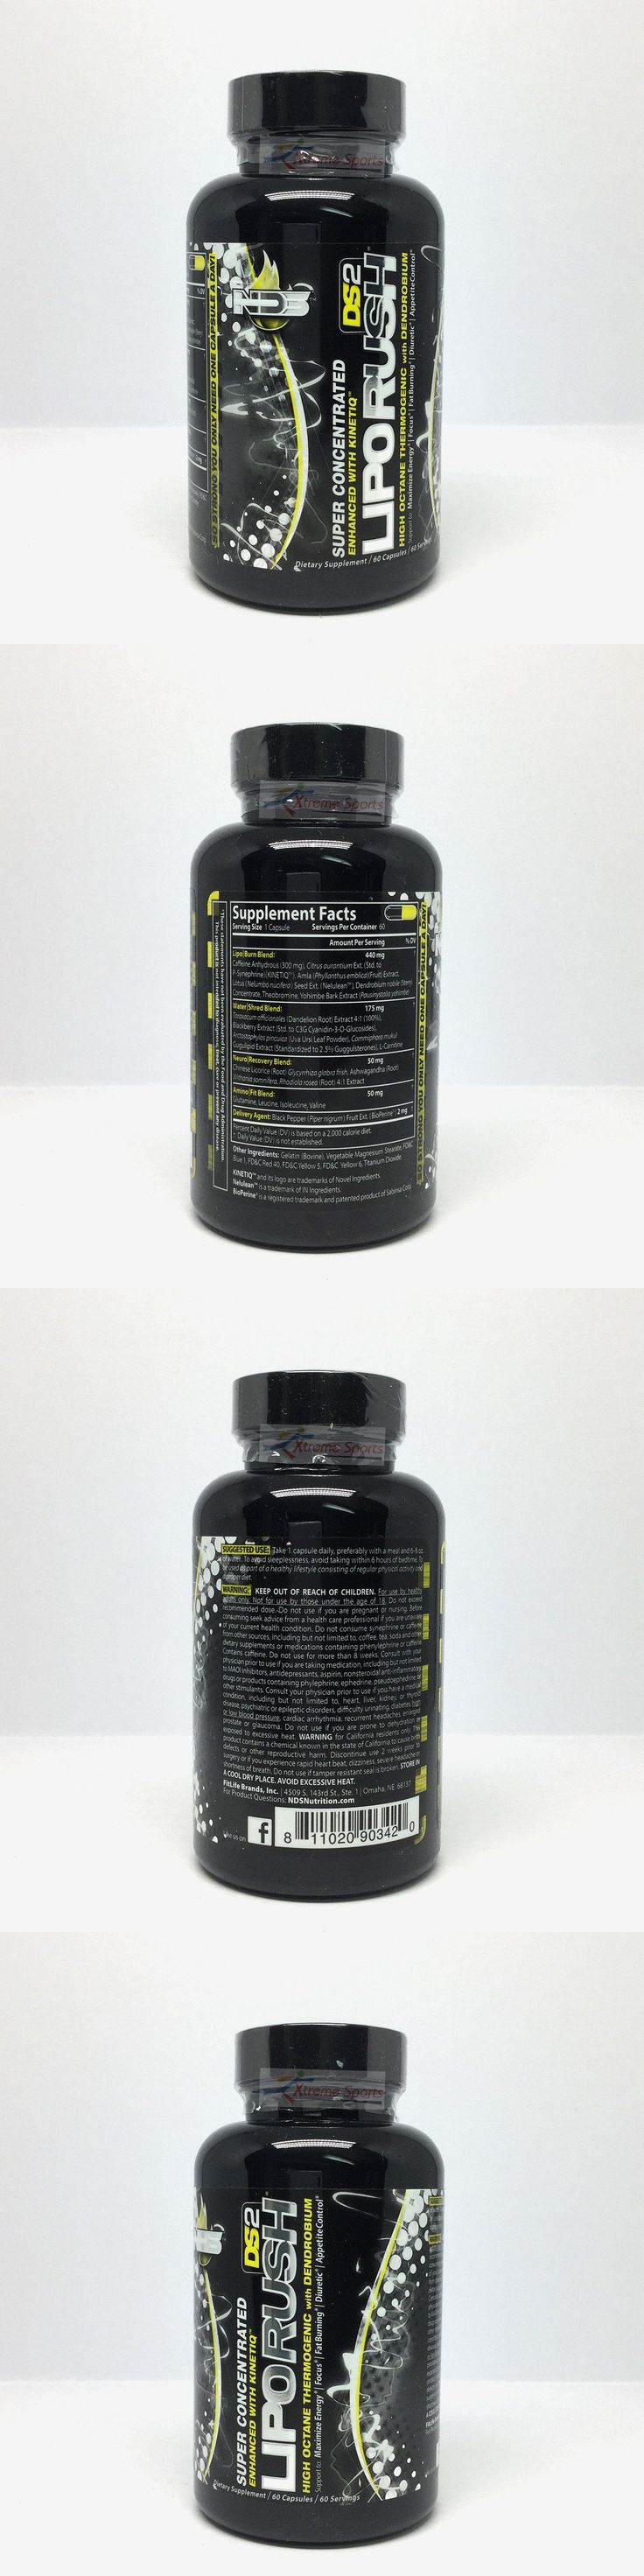 Health And Fitness: Nds Nutrition Liporush Ds2 Thermogenic Fat Burner Weight Loss 60 Caps Free Ship -> BUY IT NOW ONLY: $33.95 on eBay!